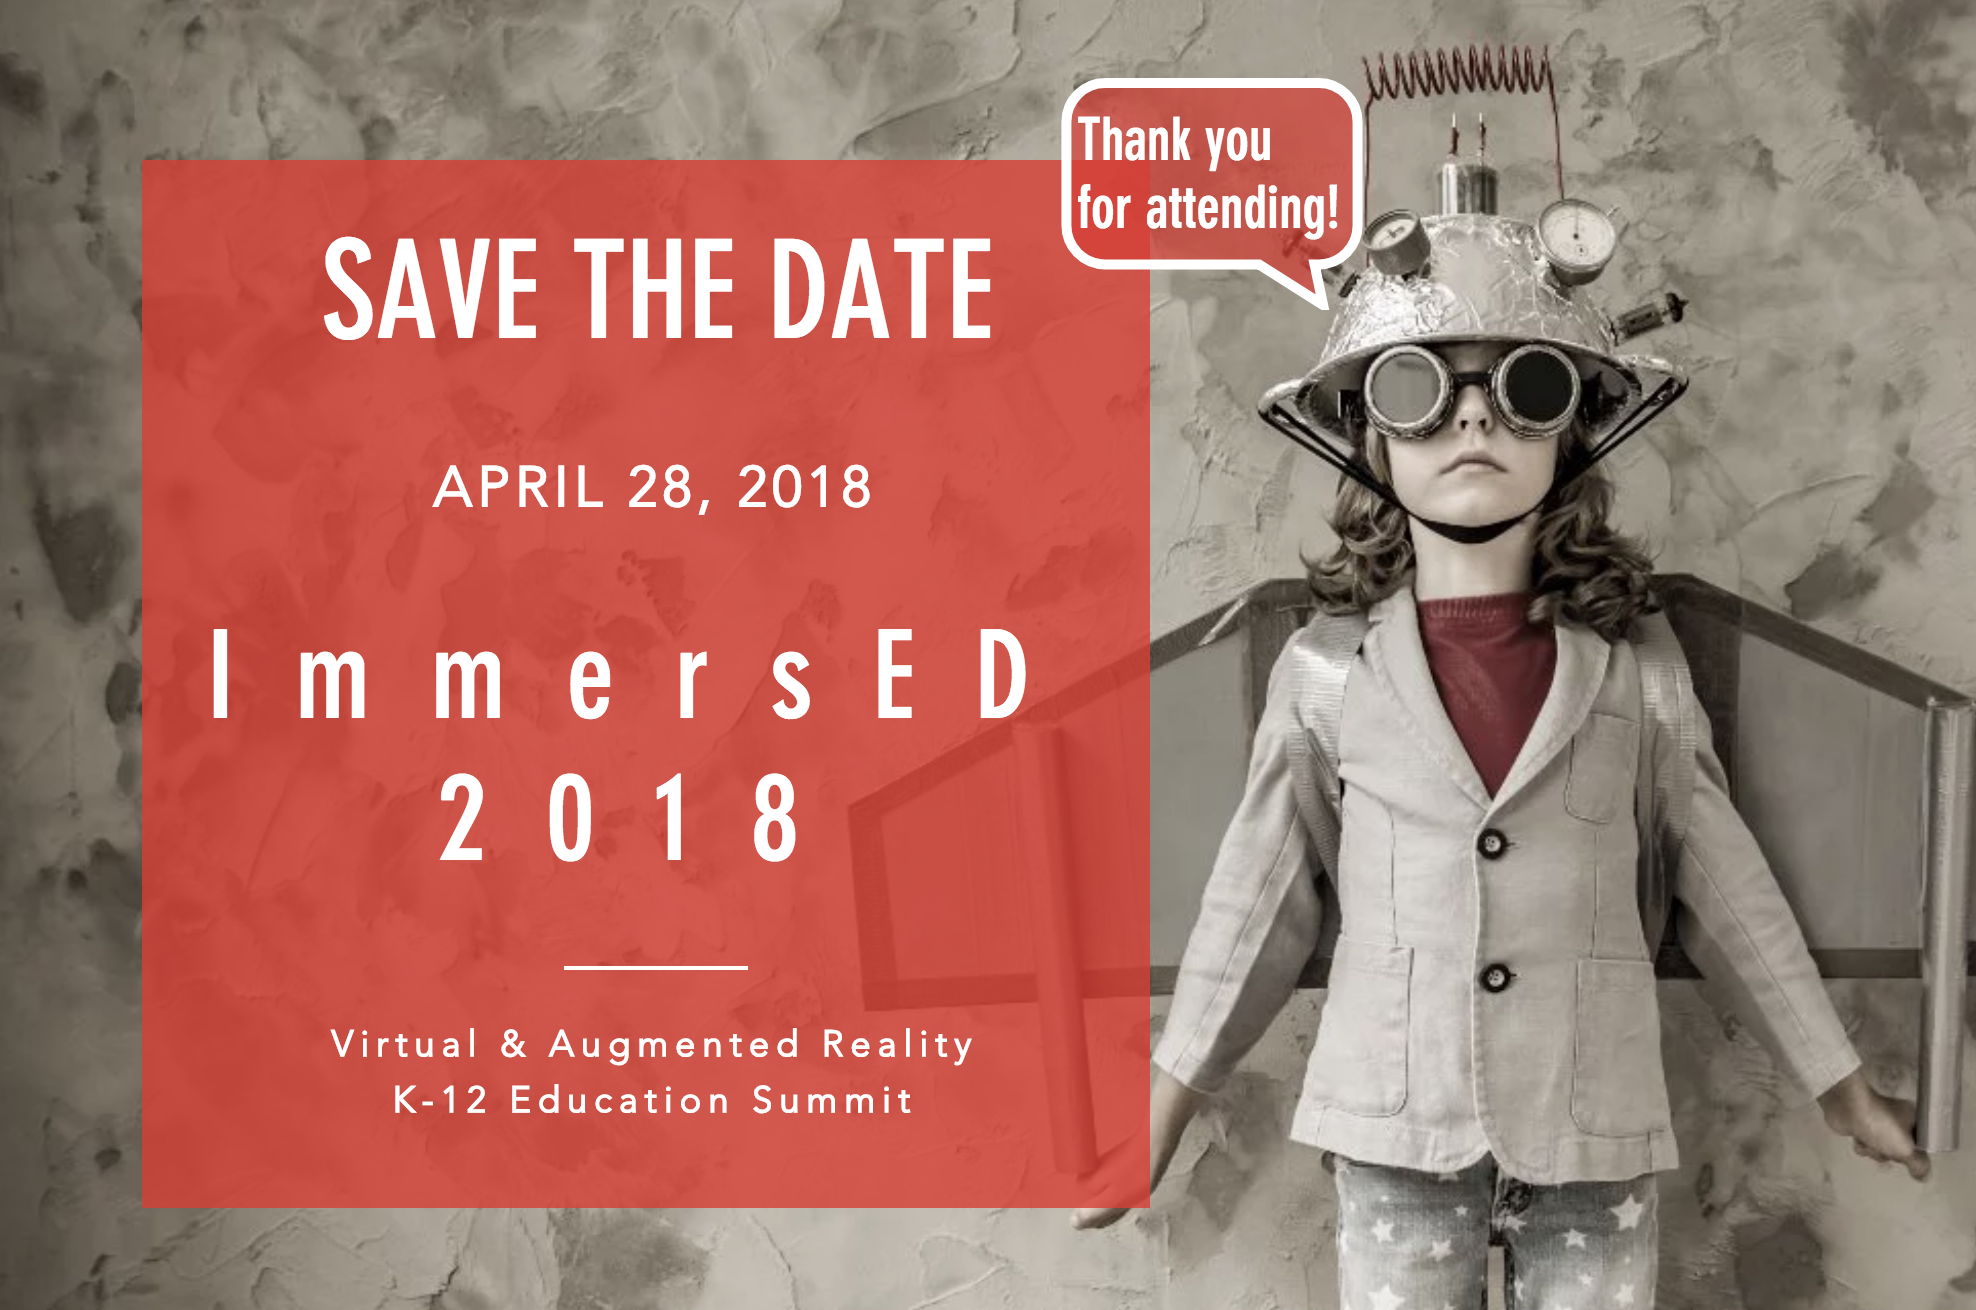 ImmersED VR/AR/EDUK-12 Summit - March - April 2018